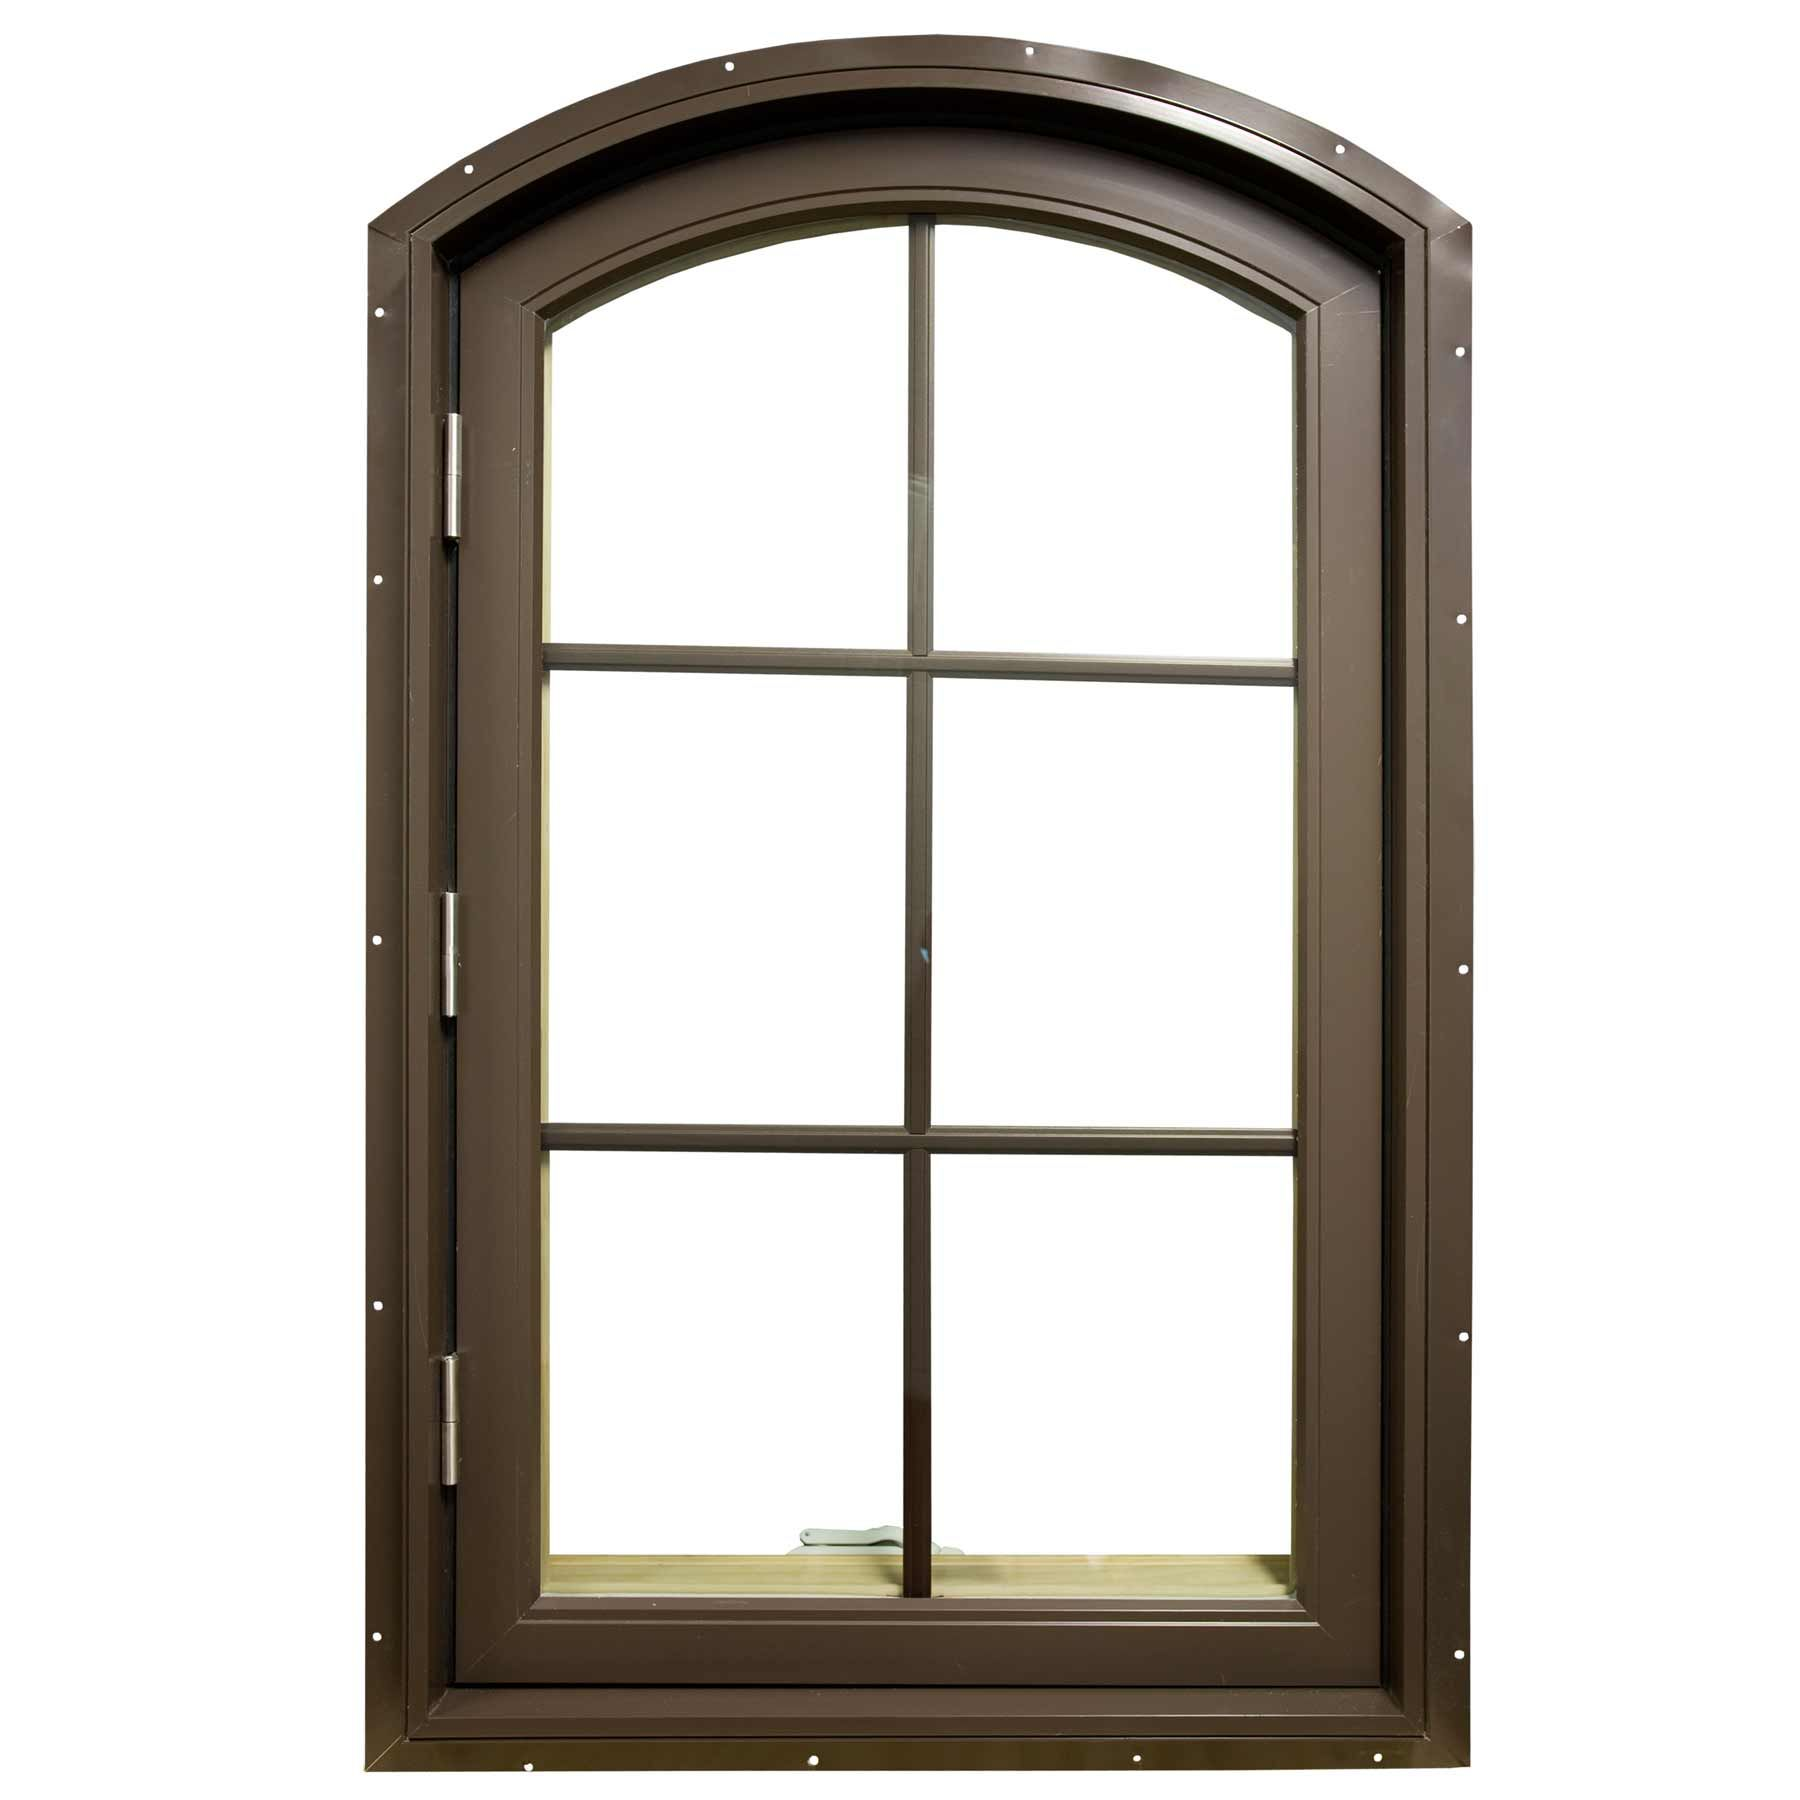 Aluminum casement windows for home feel the home for Metal windows